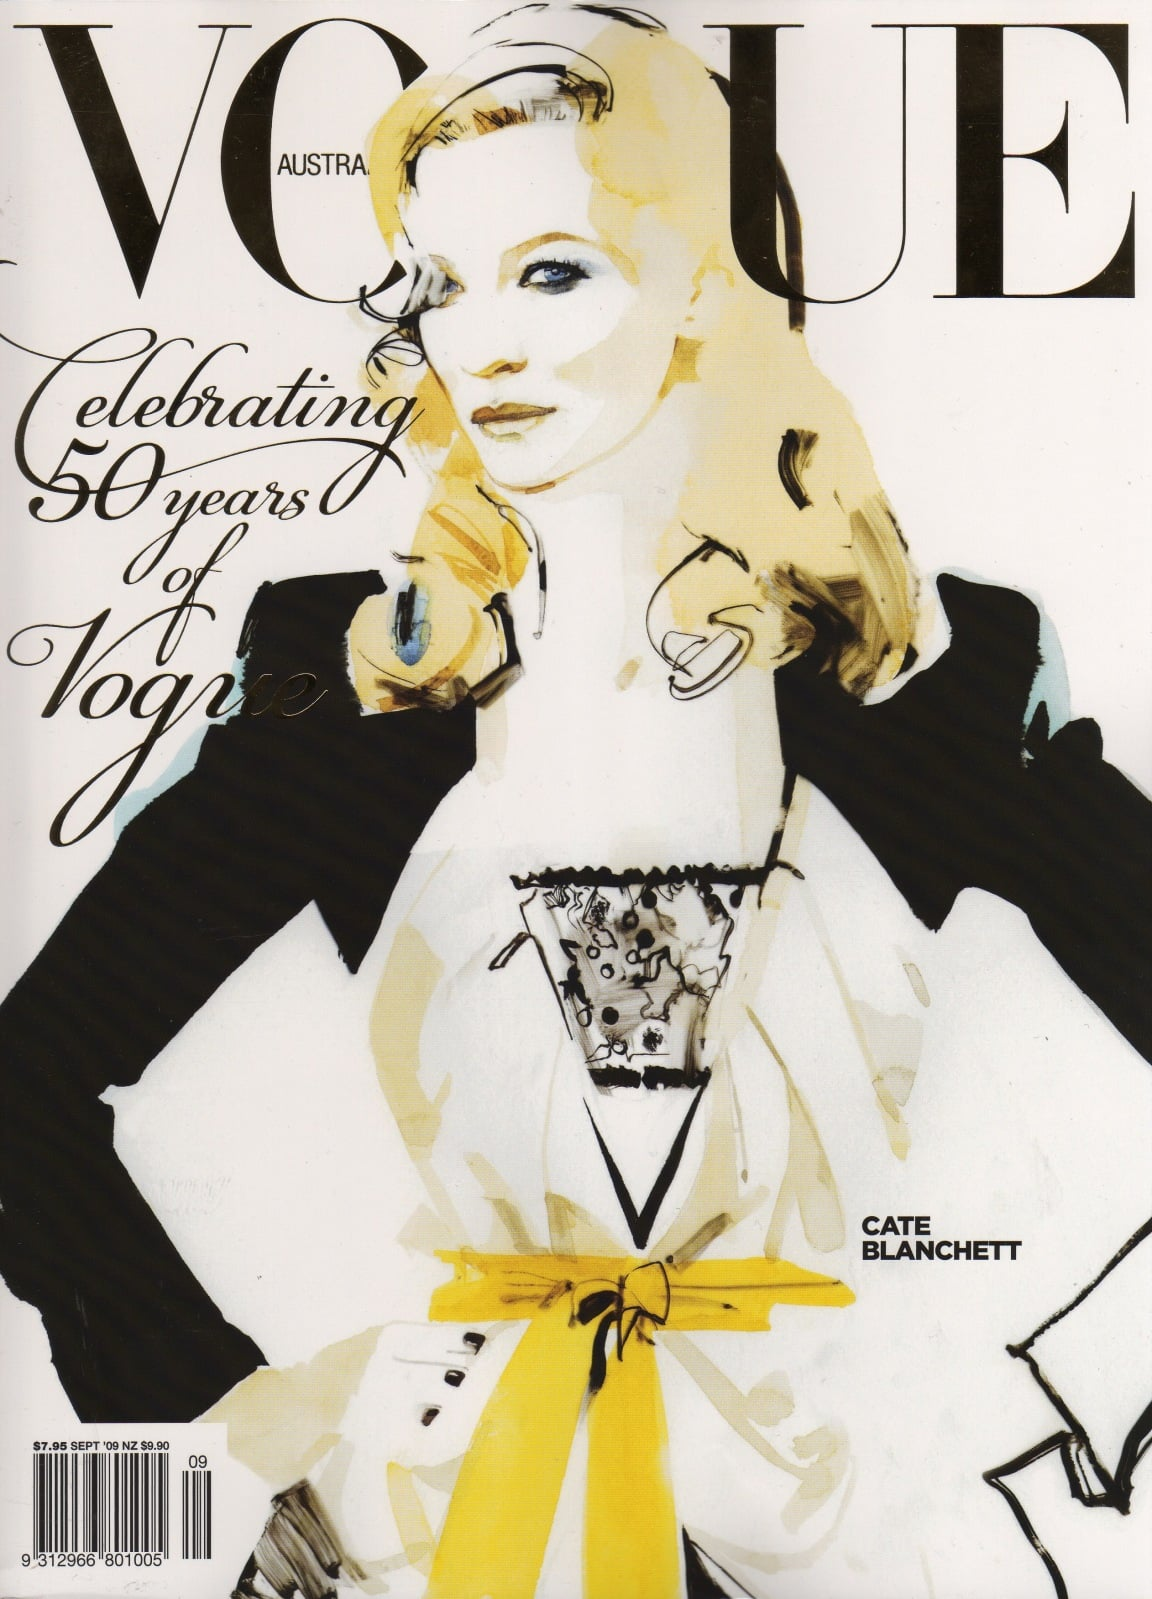 Cate Blanchett Helps Vogue Australia Celebrate 50